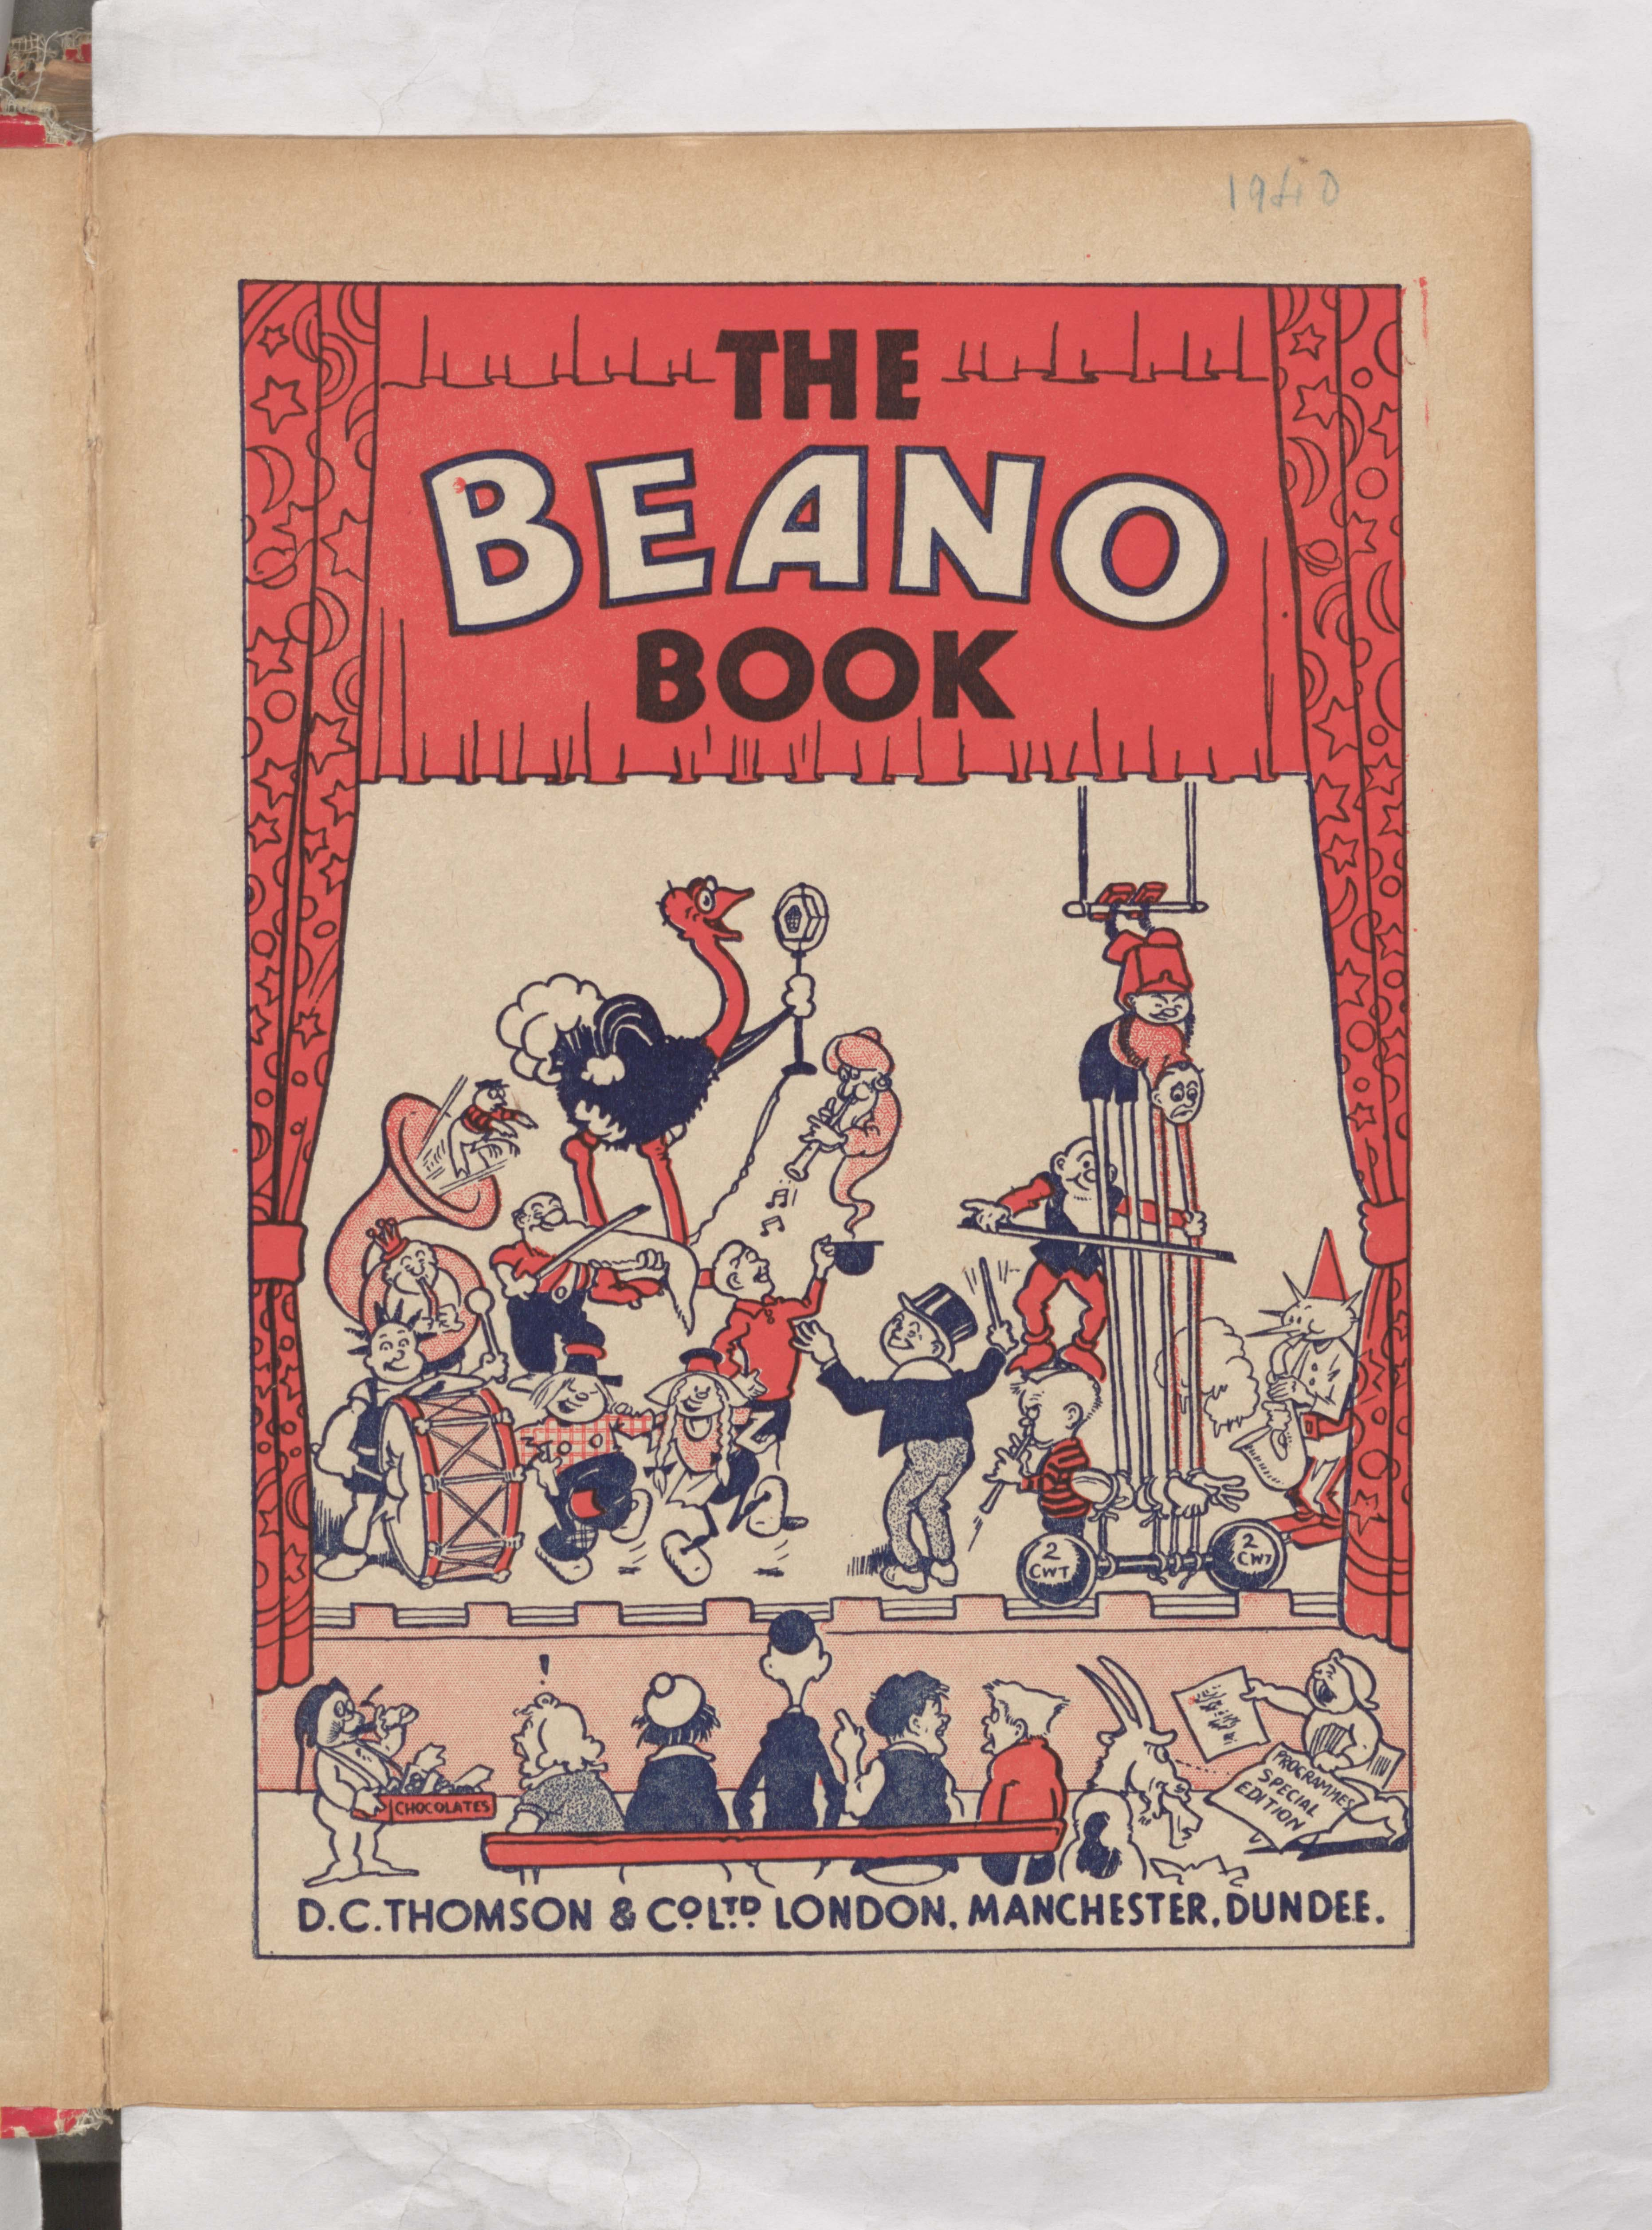 The Beano Book 1941 introduction